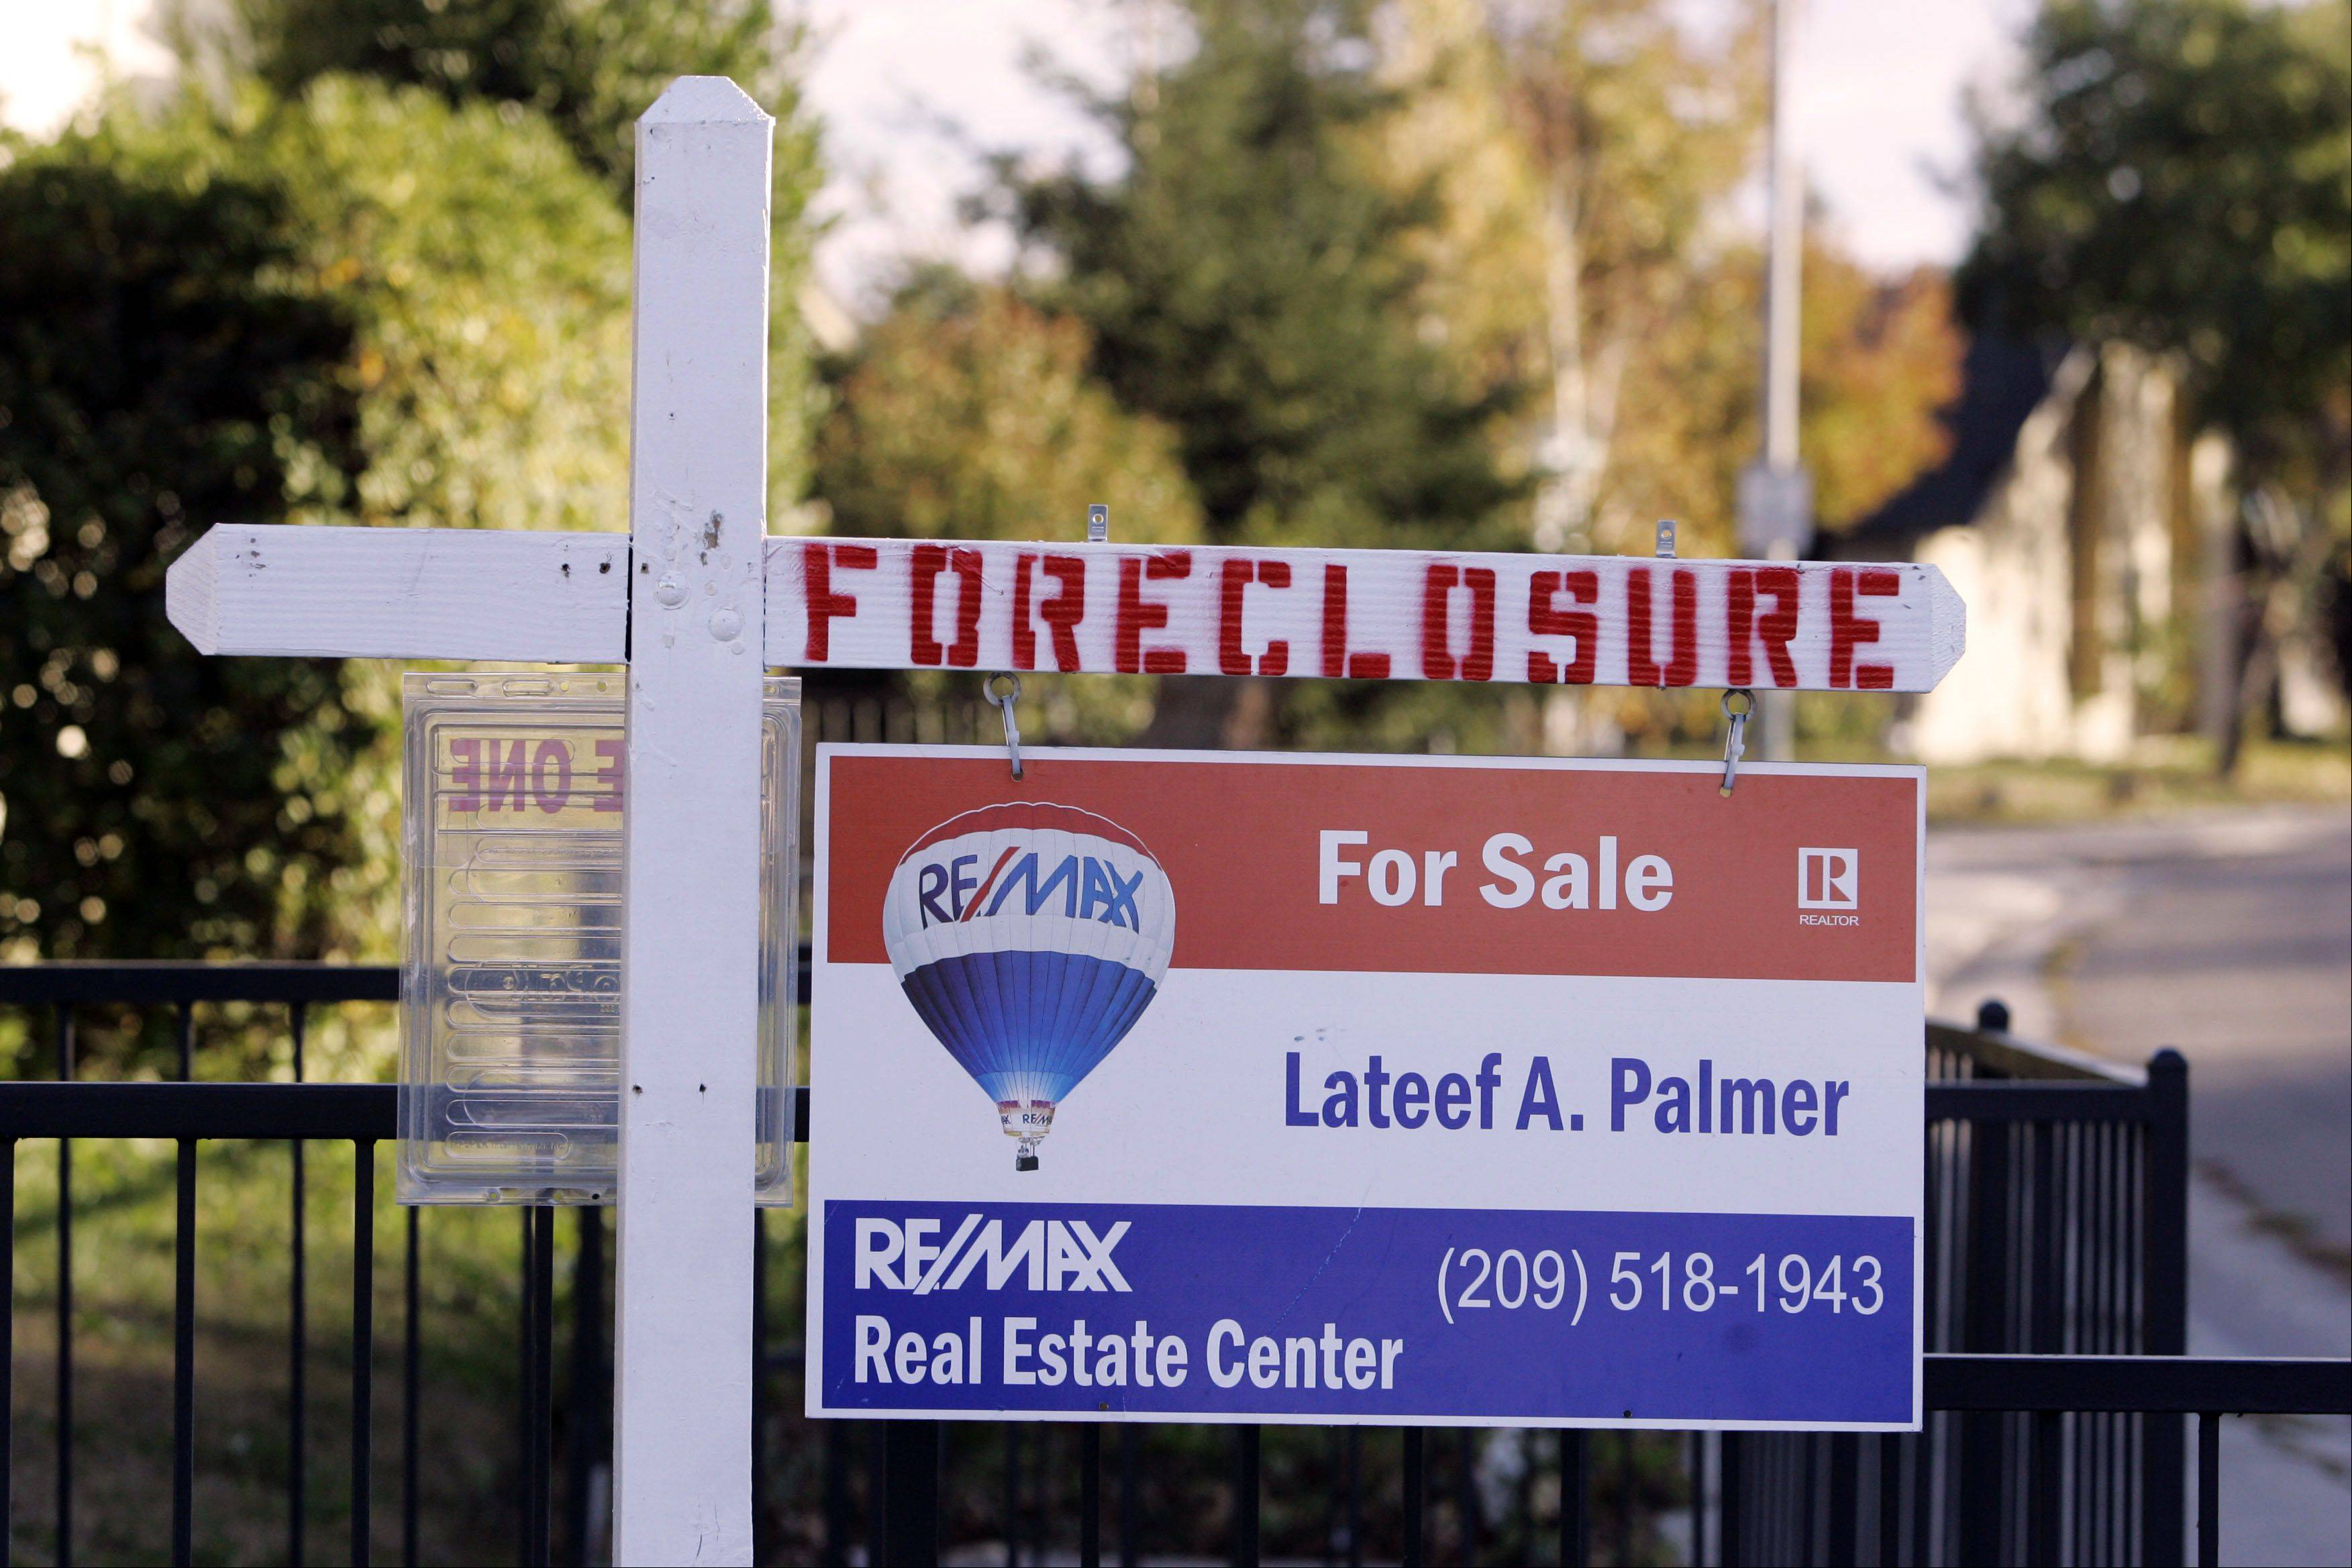 More U.S. homes started on the foreclosure path in July, as lenders tackled a backlog of mortgages gone unpaid even as they pulled back on home repossessions.